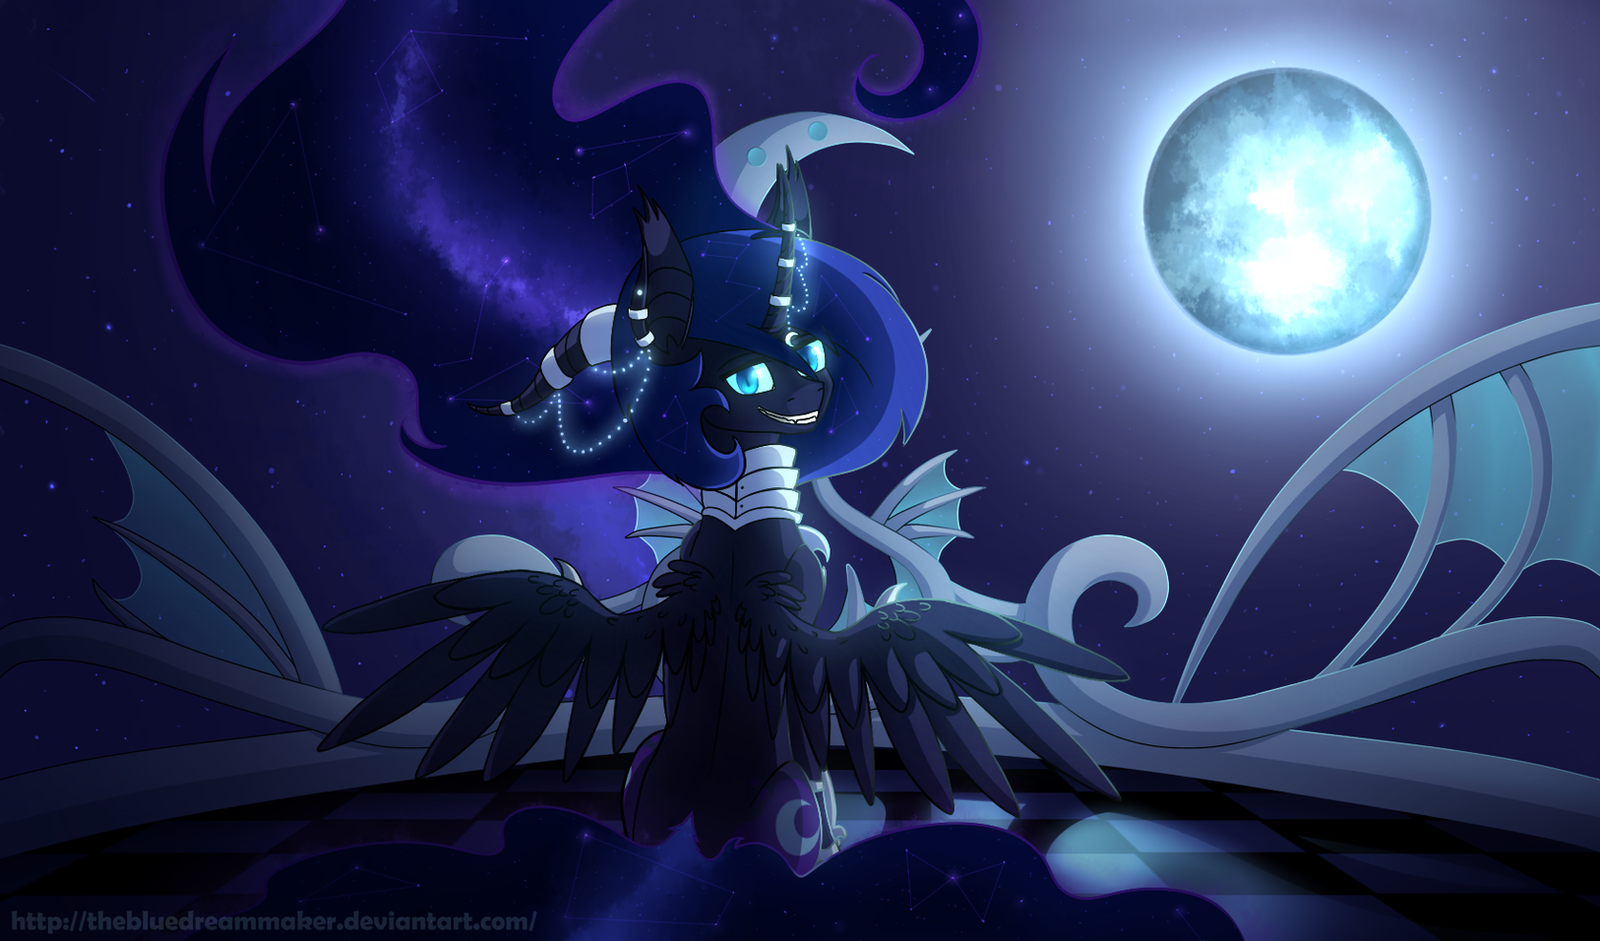 Briliant Night by TheBlueDreamMaker